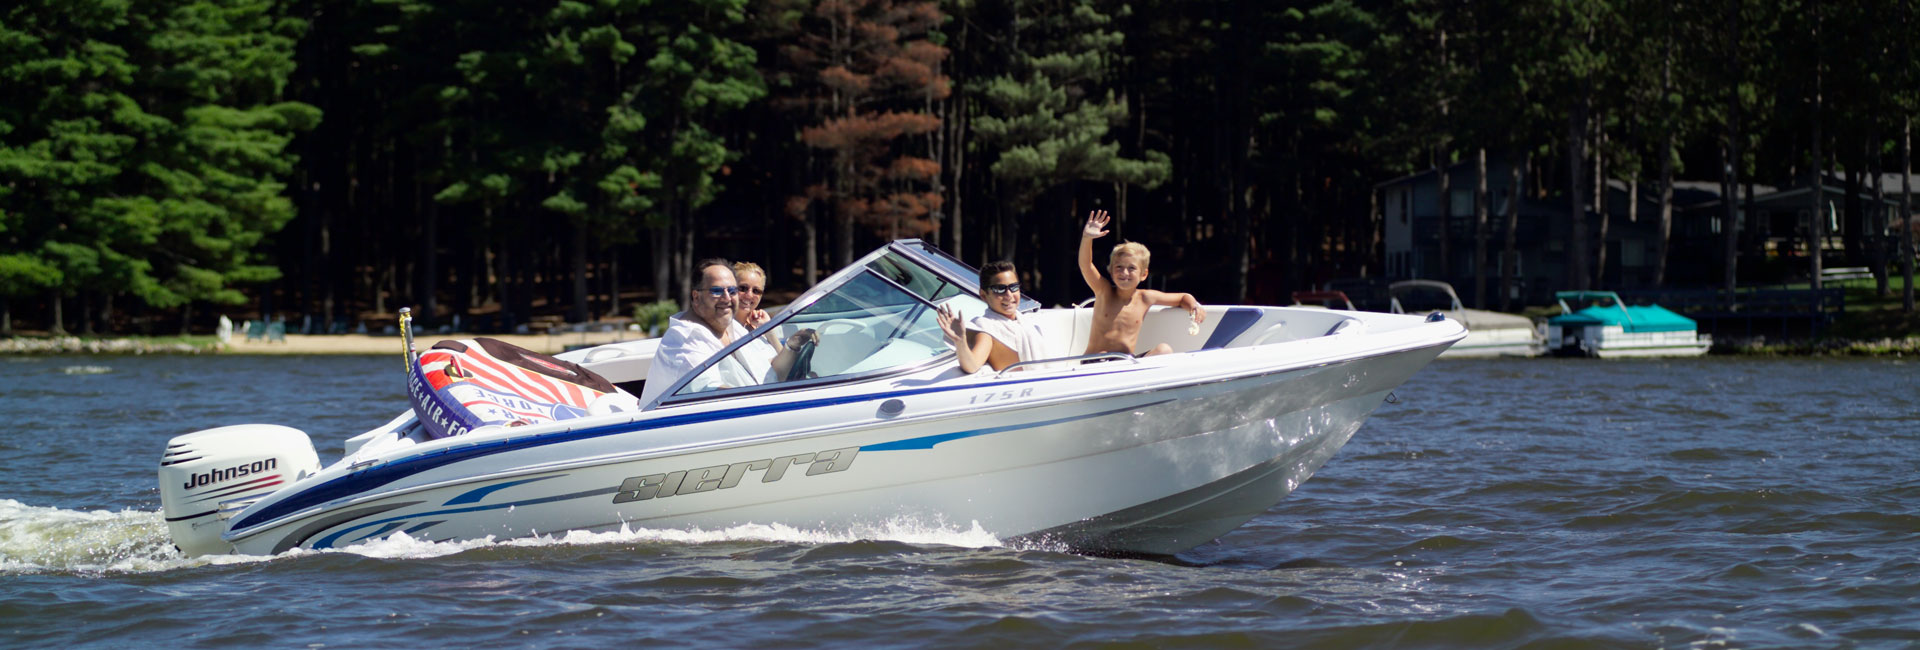 Ski Boat Rentals on Lake Delton